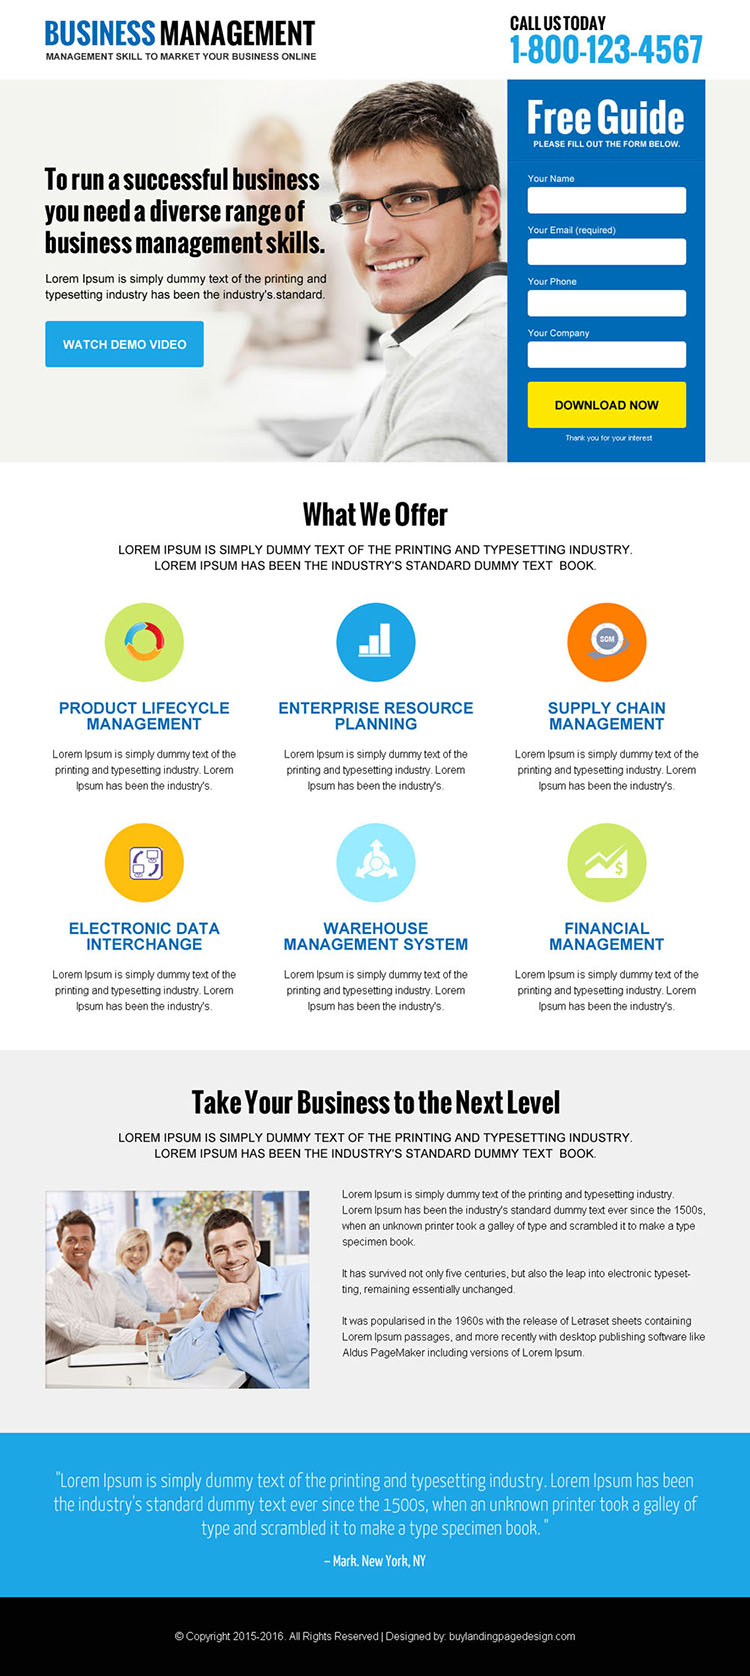 online business management lead magnet clean landing page design